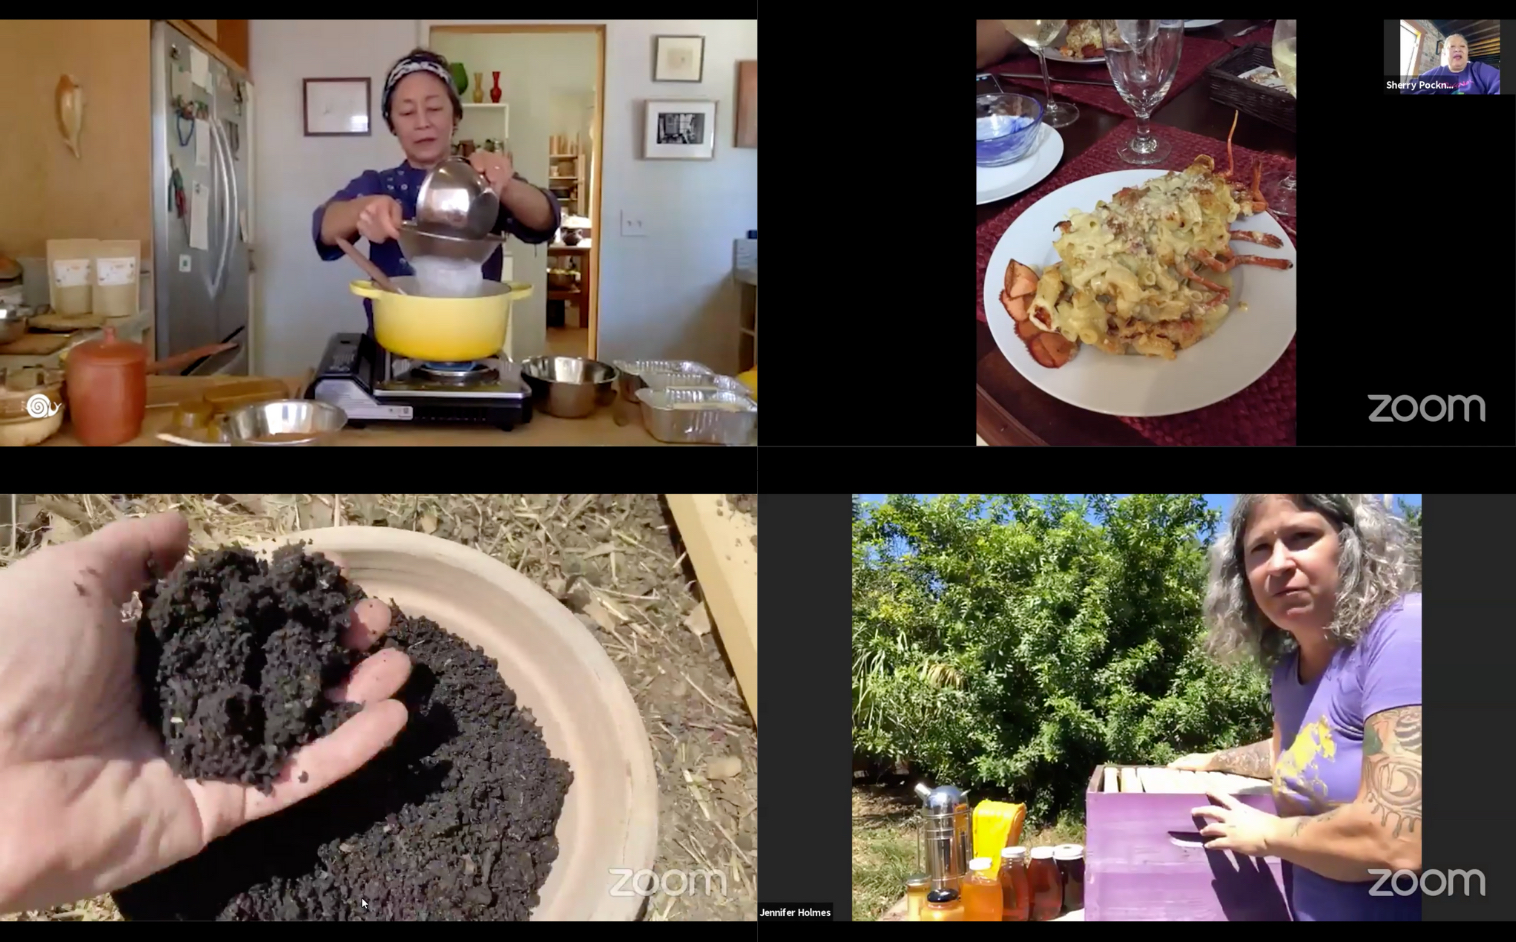 A grid of four screen shots of zoom sessions. One is a woman pouring a white substance into a seive over a yellow pot on a stove, two a plate of pasta covered lobster, three a hand in a pot of soil, four a woman with an open beehive and jars of honey